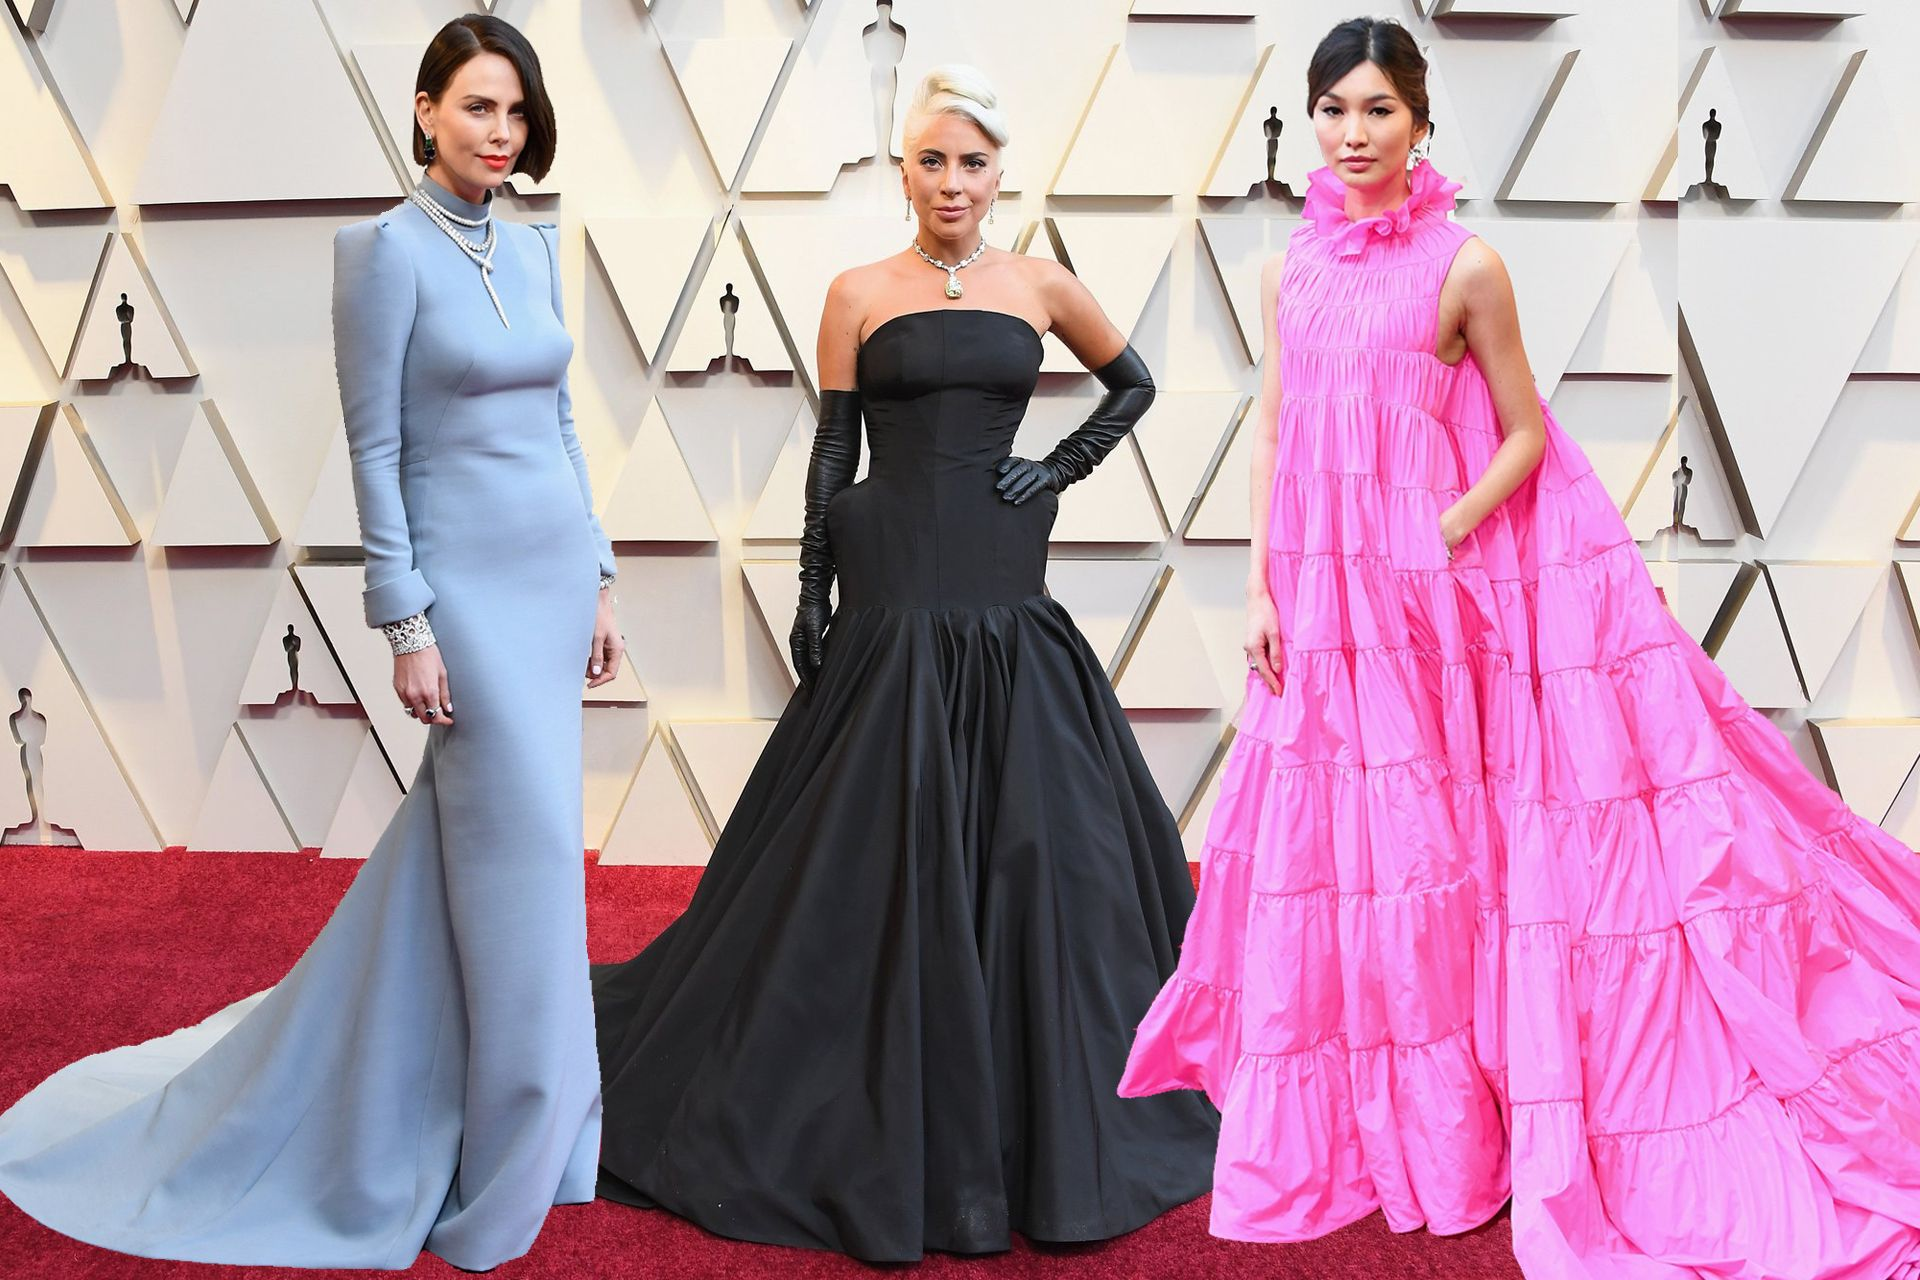 9 Of The Best Red Carpet Looks At The Oscars 2019